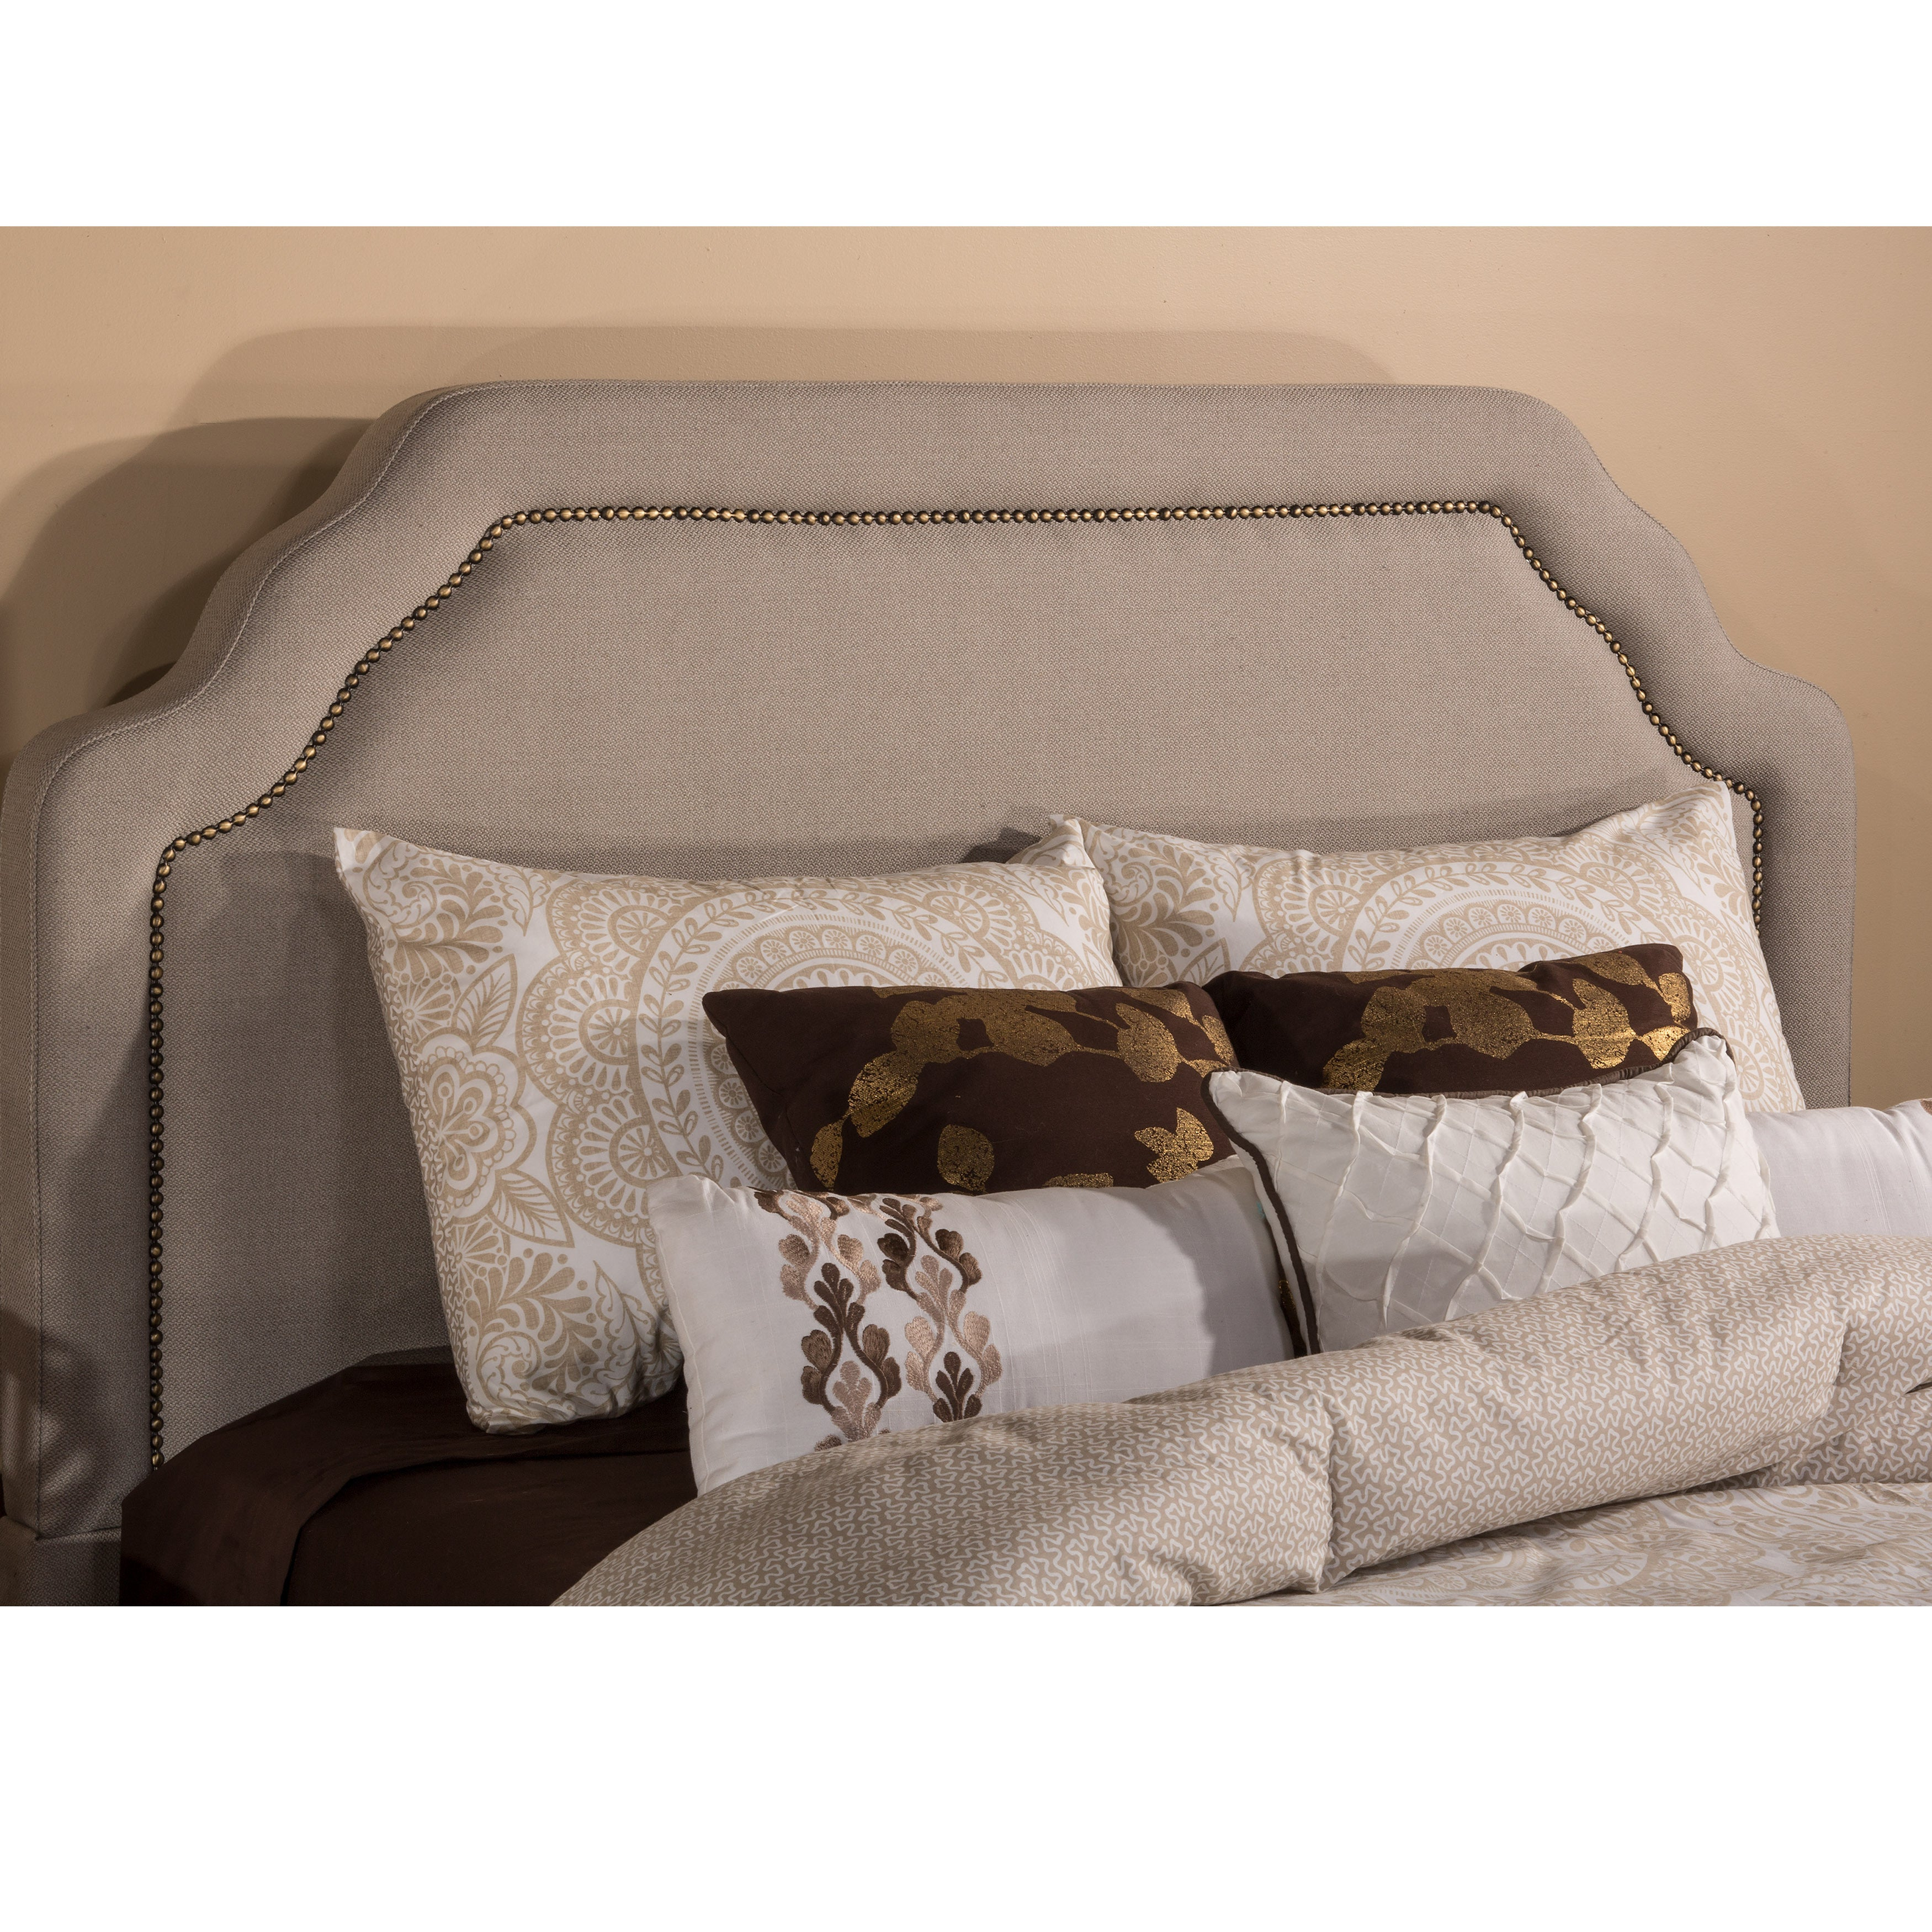 Hillsdale Carlyle Taupe/Beige Wood/Metal/Fabric King/Quee...